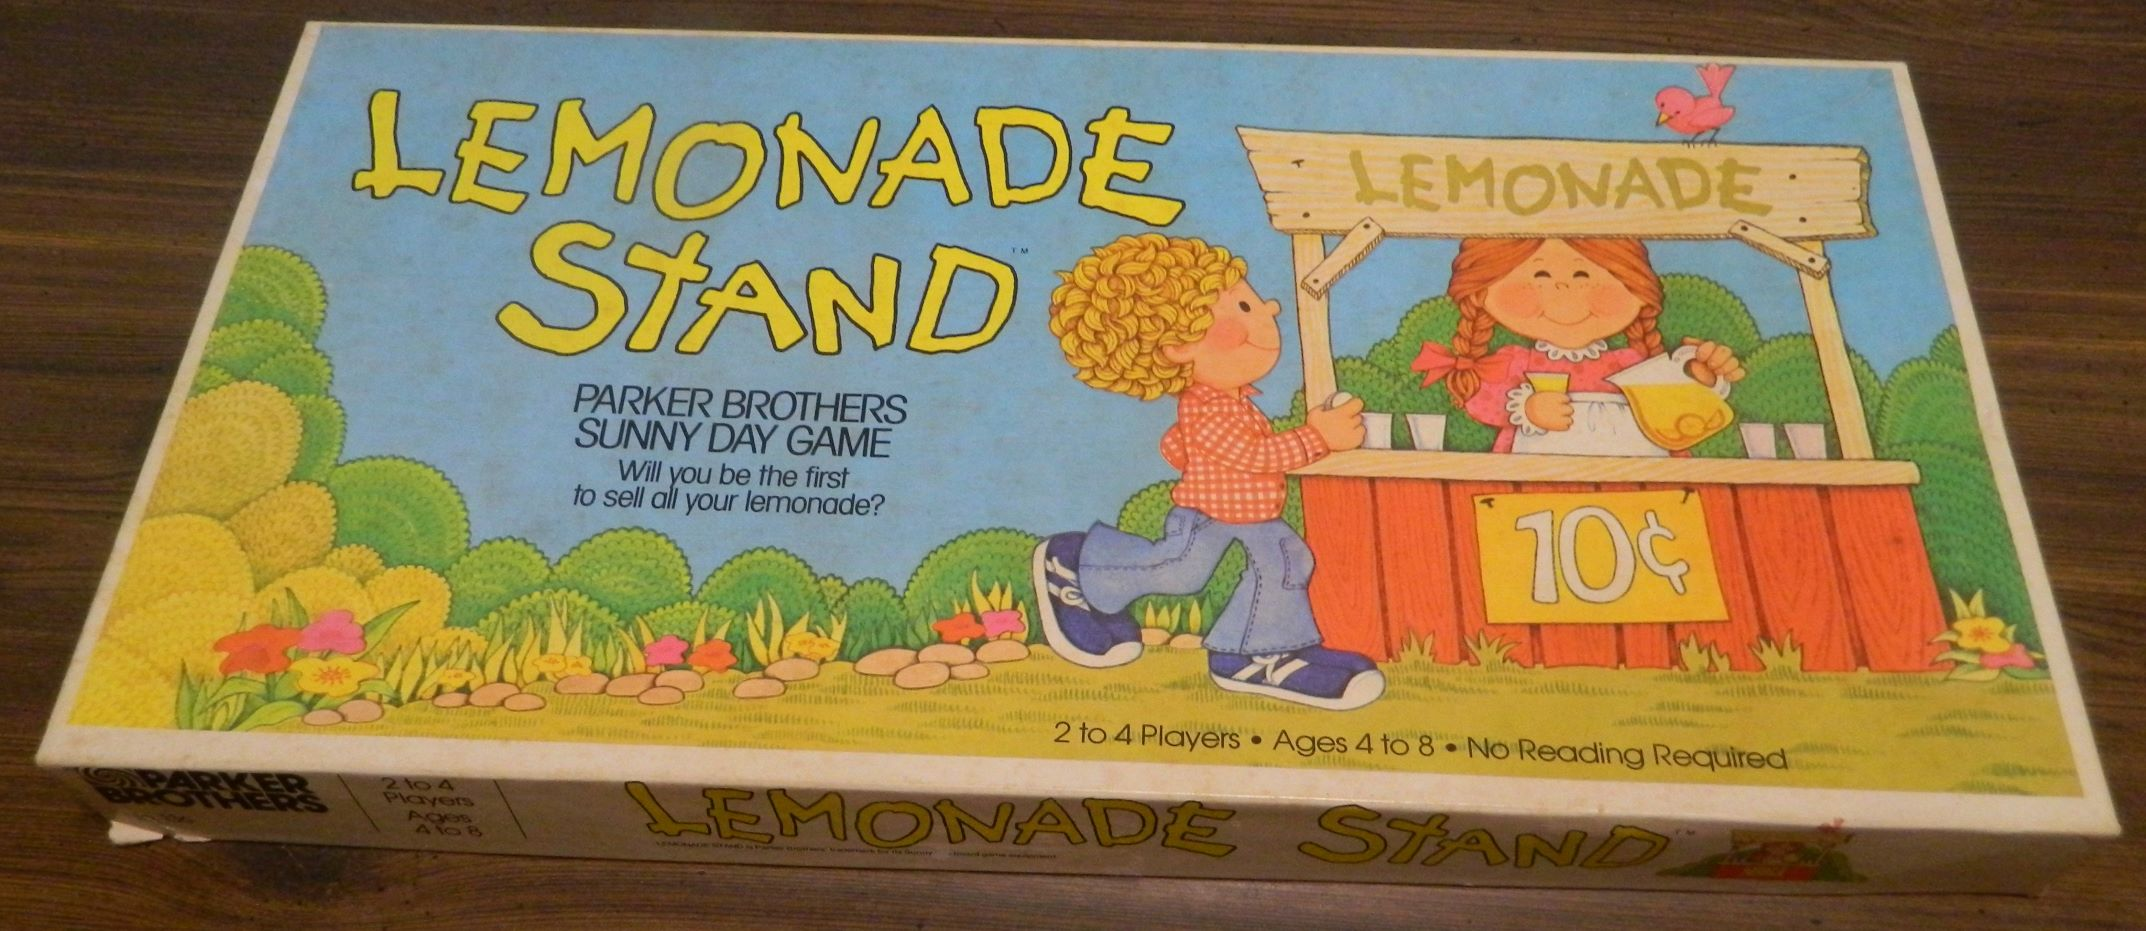 Box for Lemonade Stand